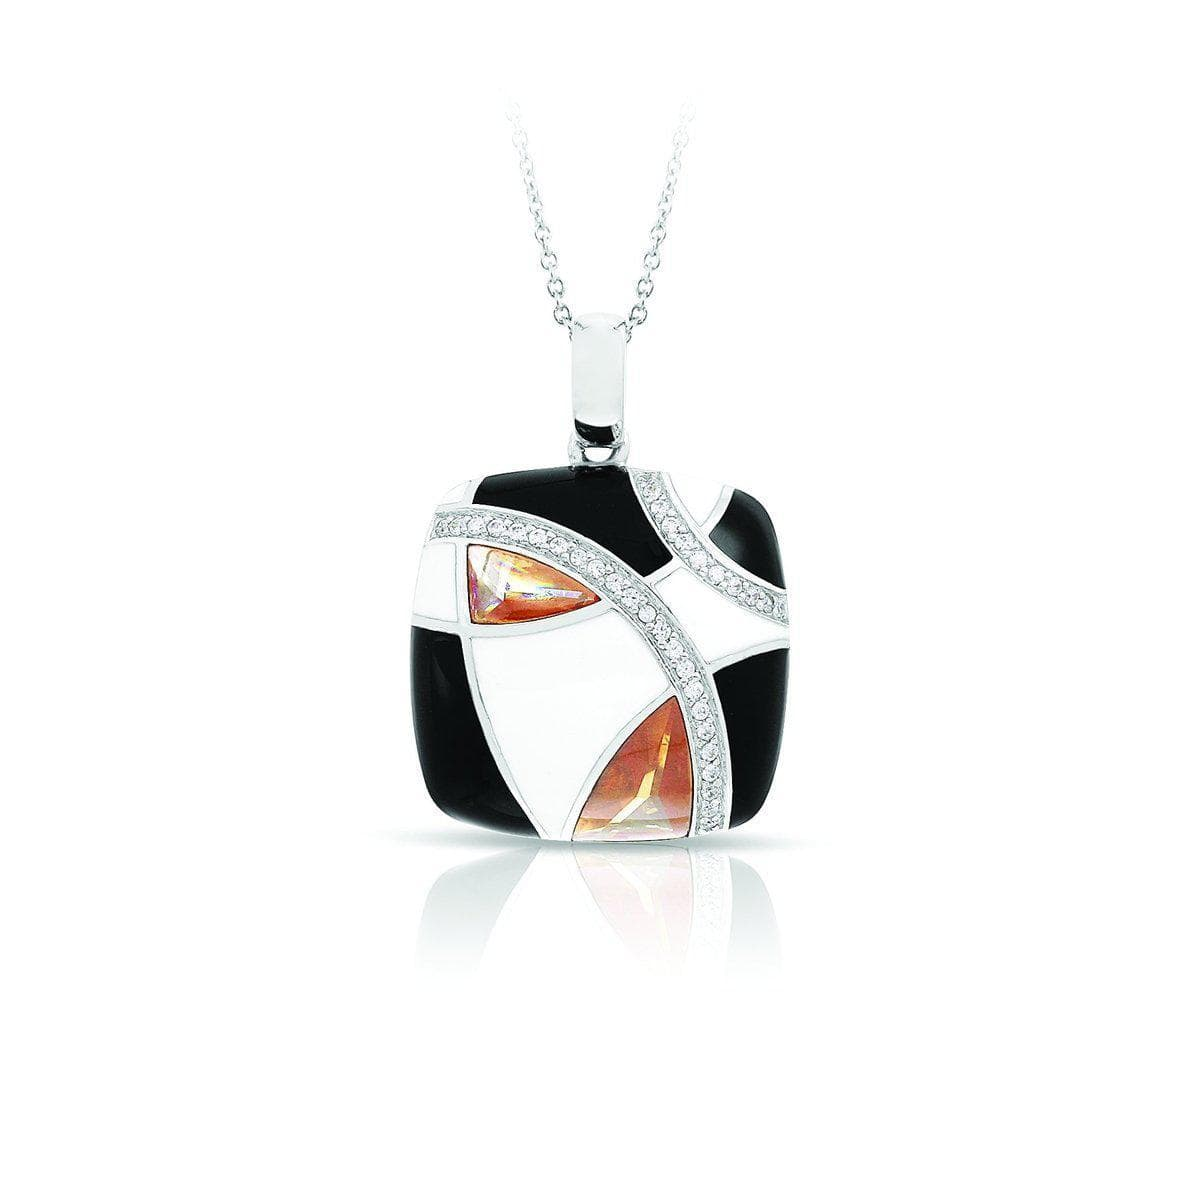 Tango Champagne, Black, & White Pendant-Belle Etoile-Renee Taylor Gallery